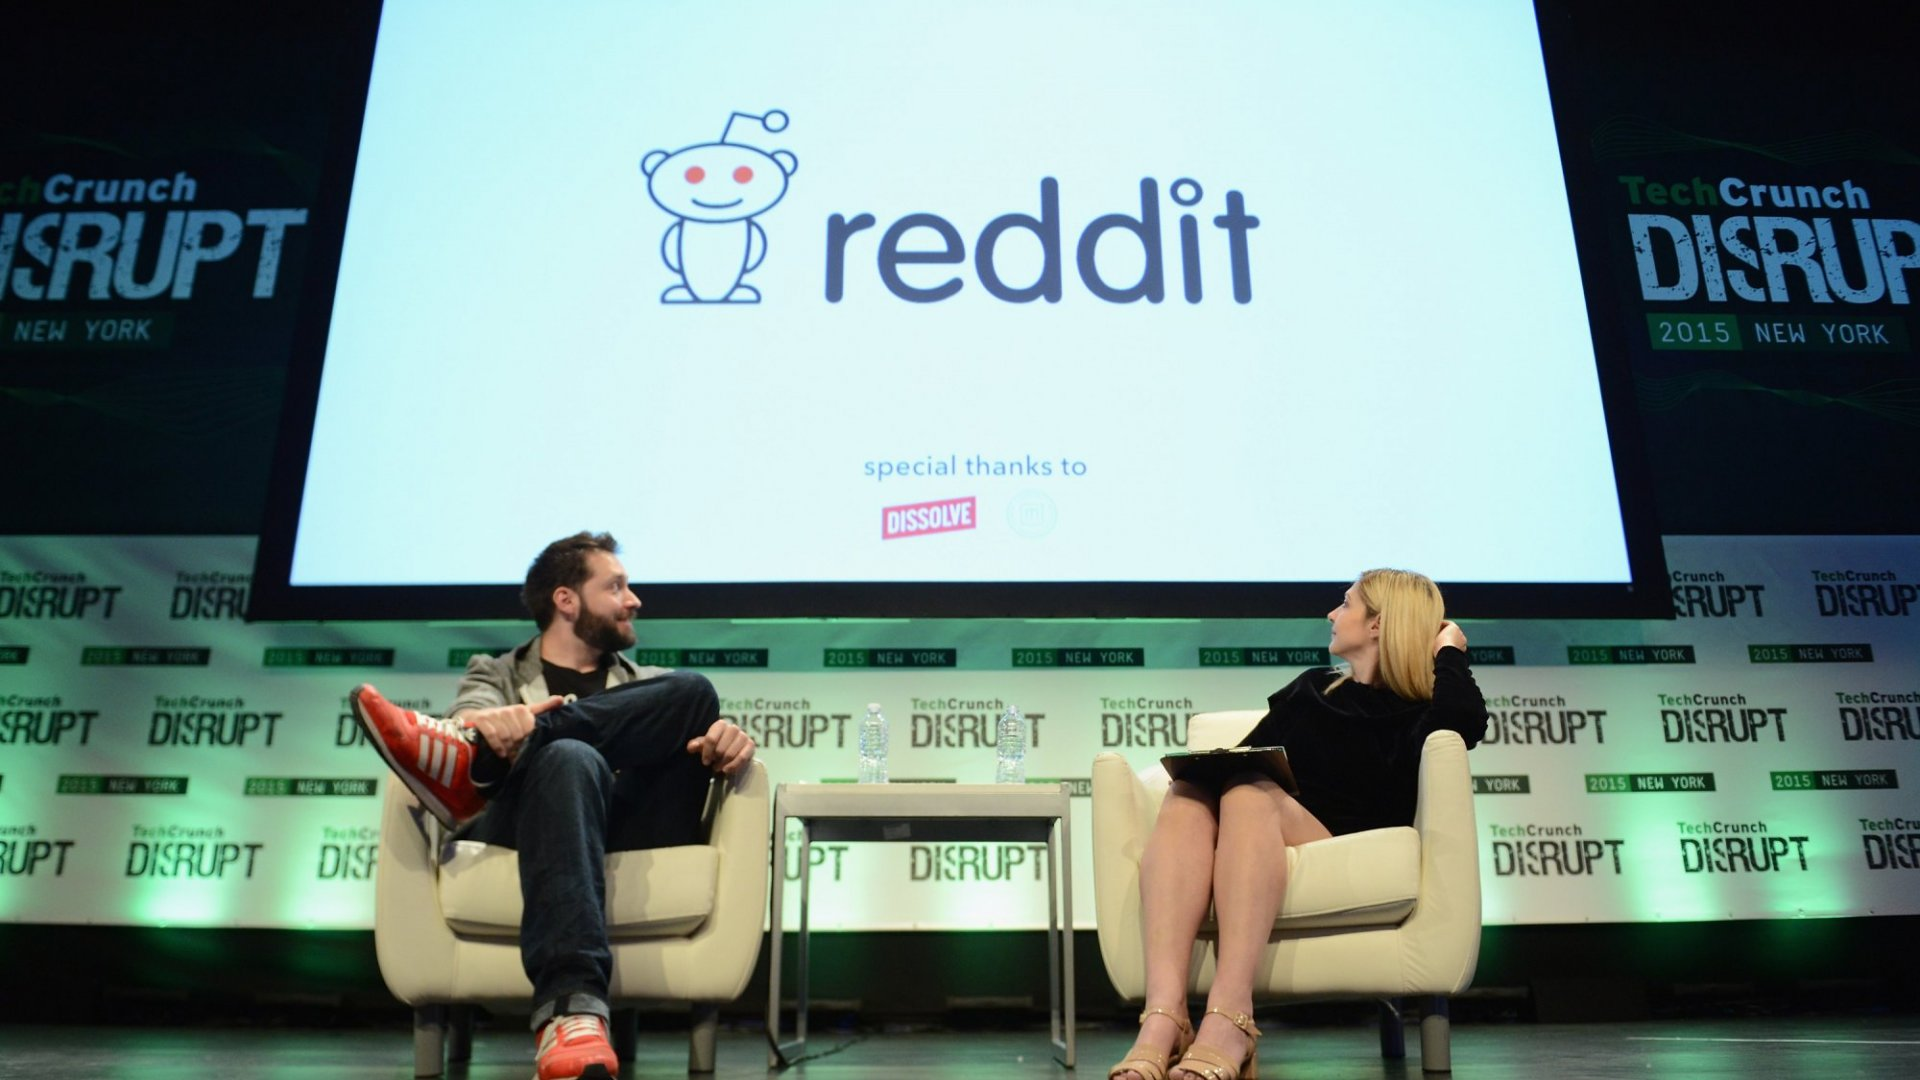 10 Best Subreddits for Entrepreneurs on Reddit's 10th Birthday